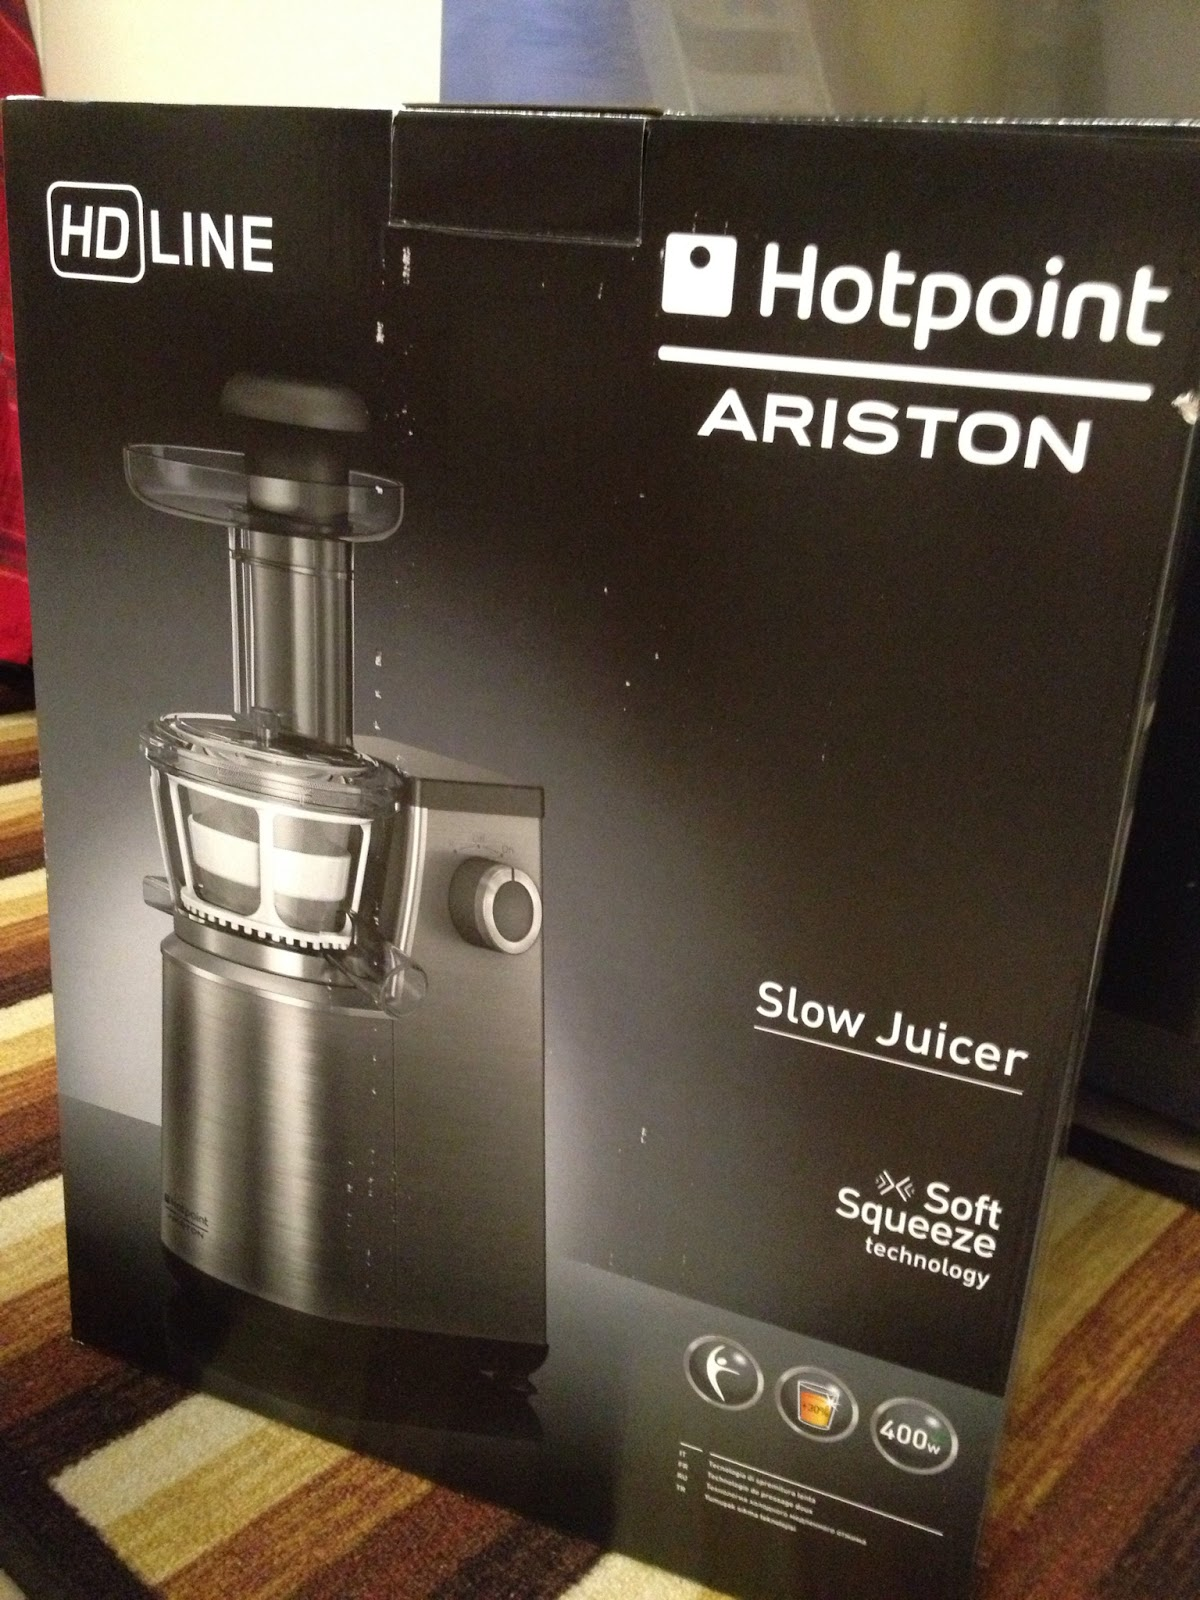 Slow Juicer Hotpoint Ariston Opinioni : ???????: ????Hotpoint ariston Slow juicer